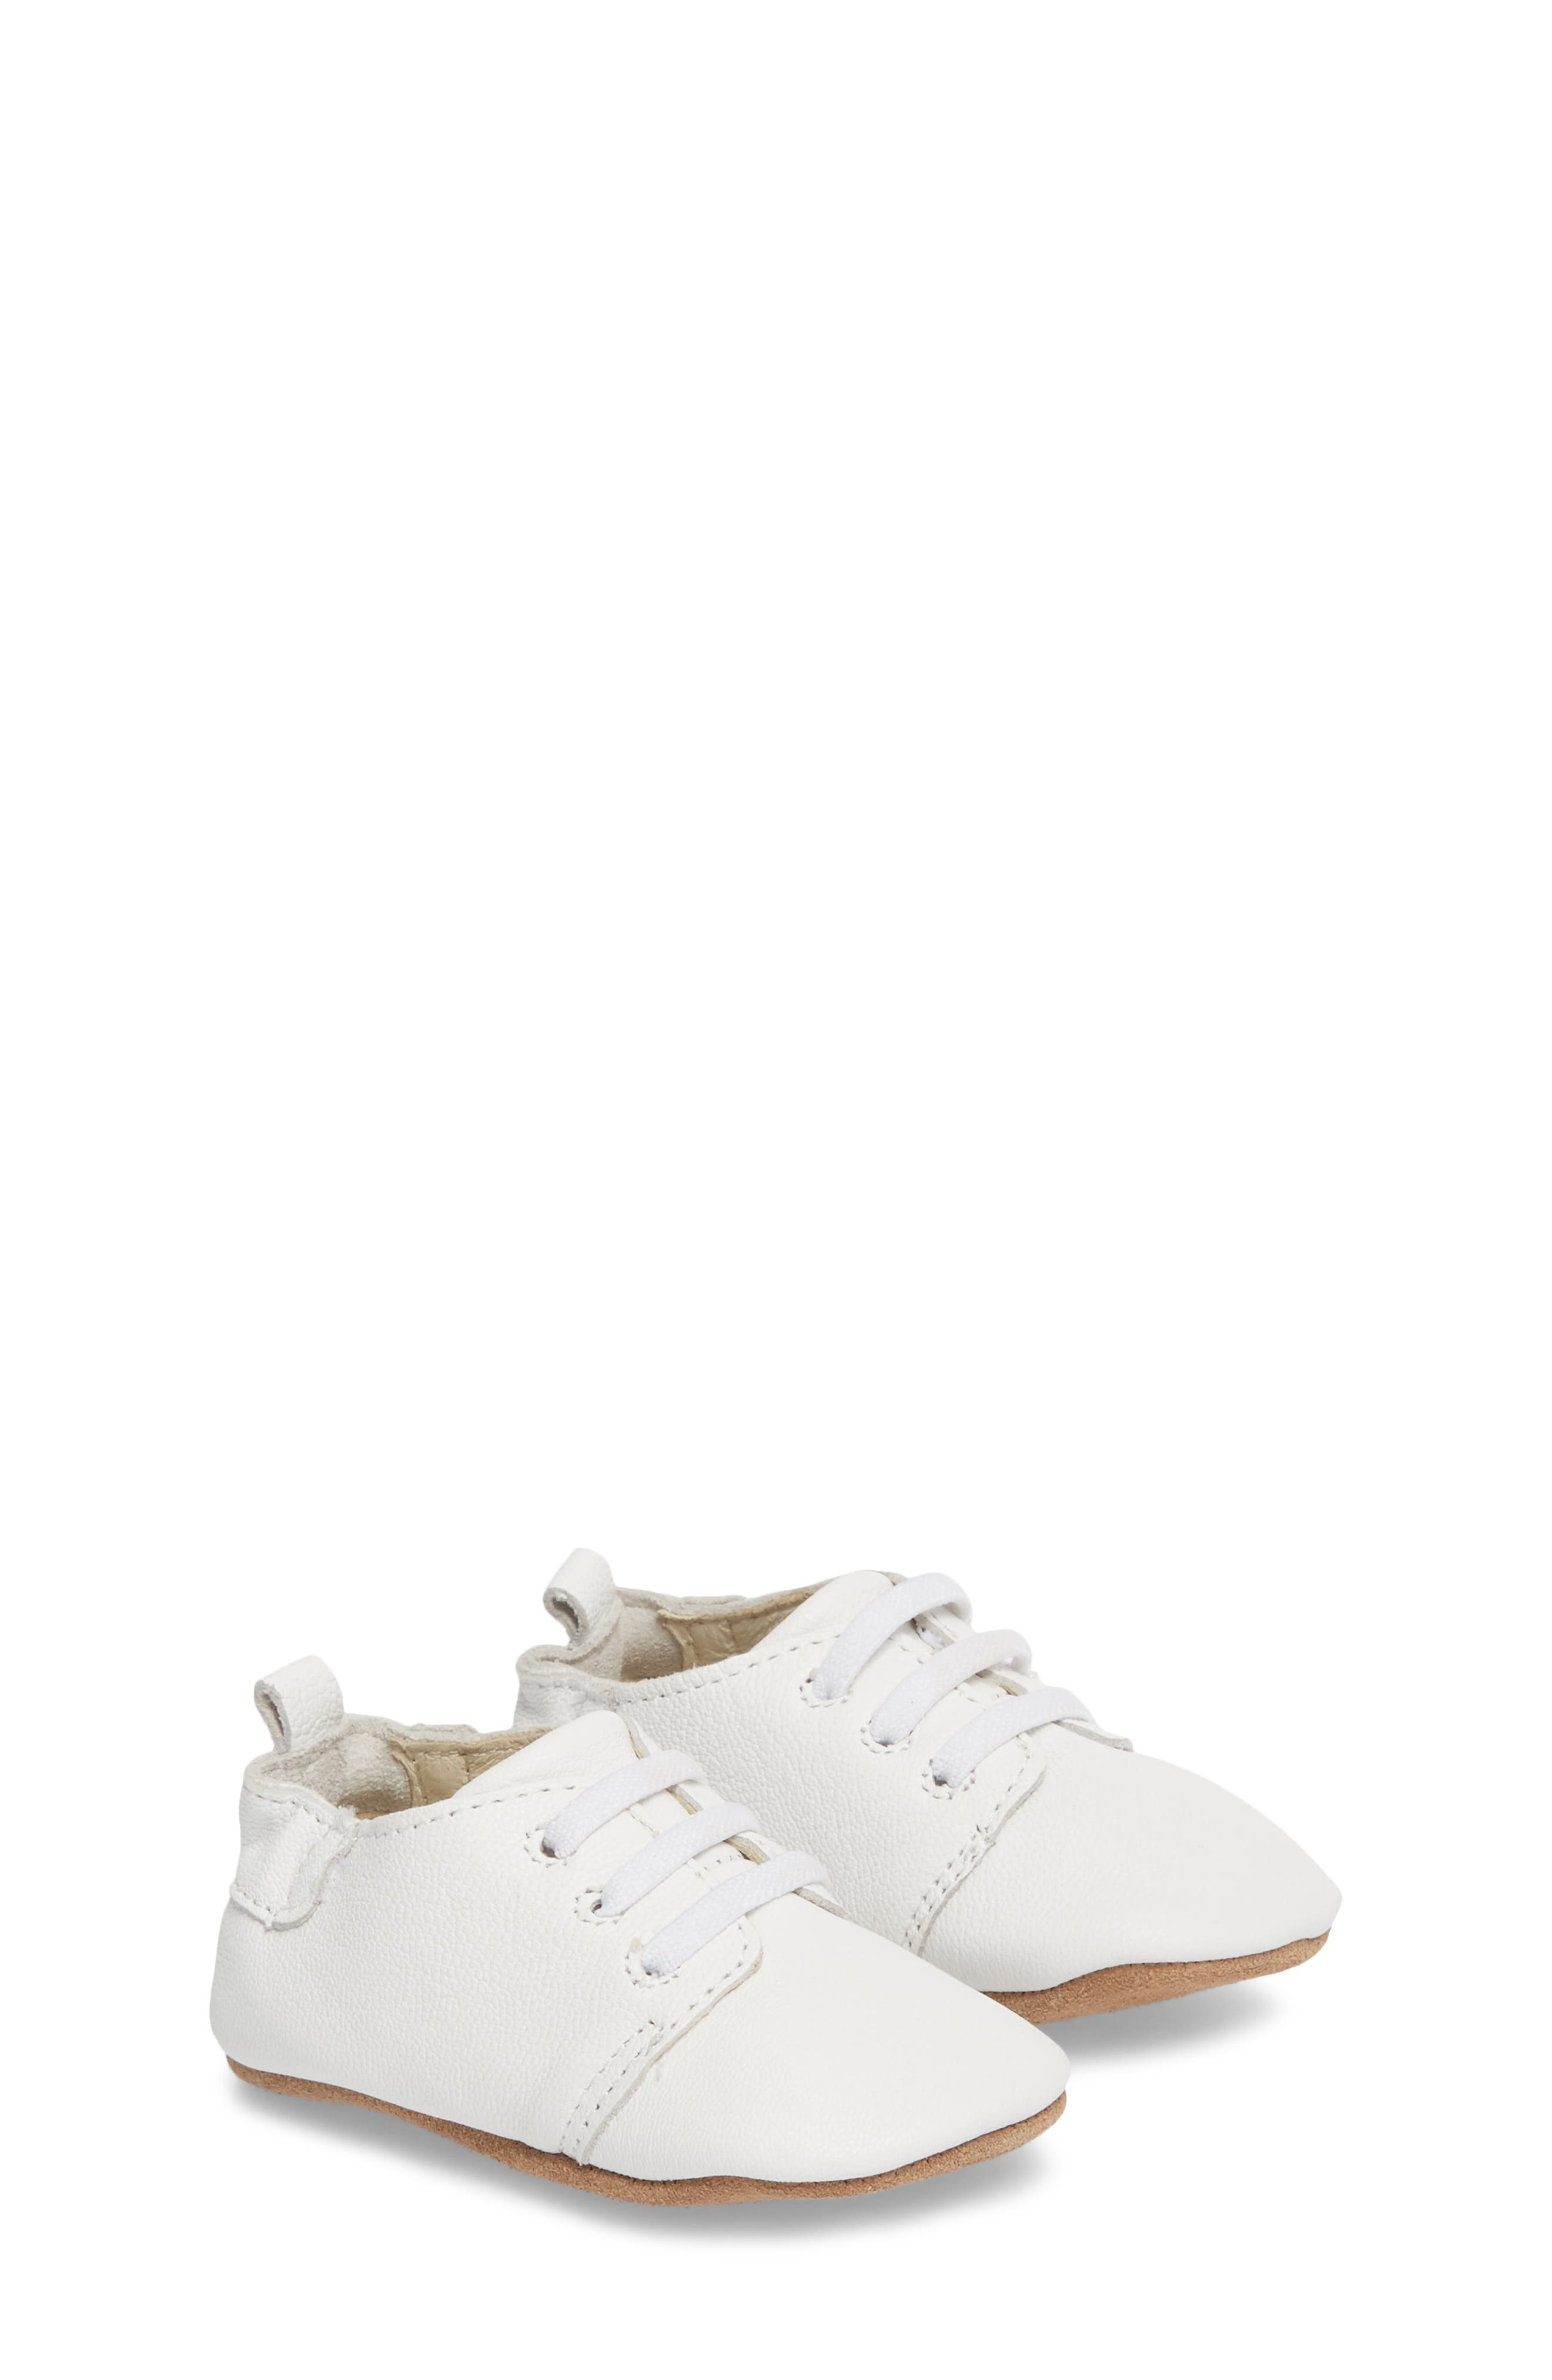 Owen Oxford Crib Shoe,                             Alternate thumbnail 3, color,                             White